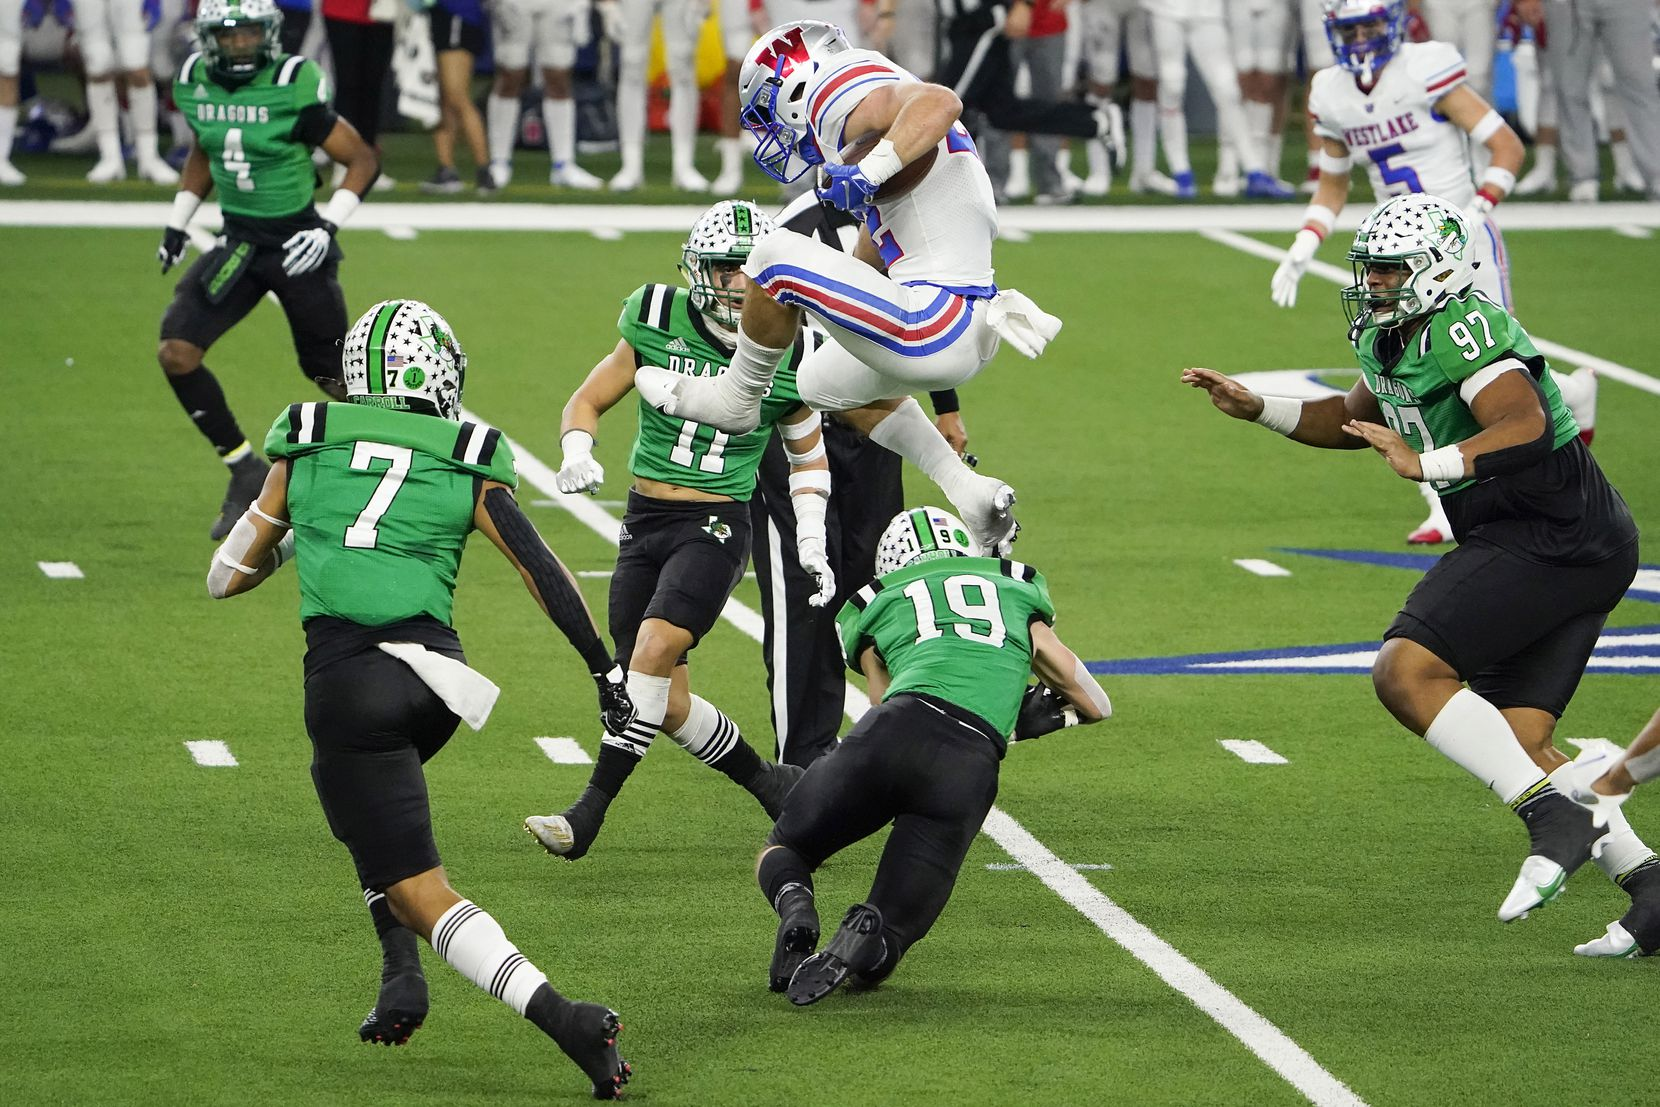 Austin Westlake running back Grey Nakfoor (22) hurdles Southlake Carroll defensive back Logan Anderson (19) on a run during the third quarter of the Class 6A Division I state football championship game at AT&T Stadium on Saturday, Jan. 16, 2021, in Arlington, Texas.